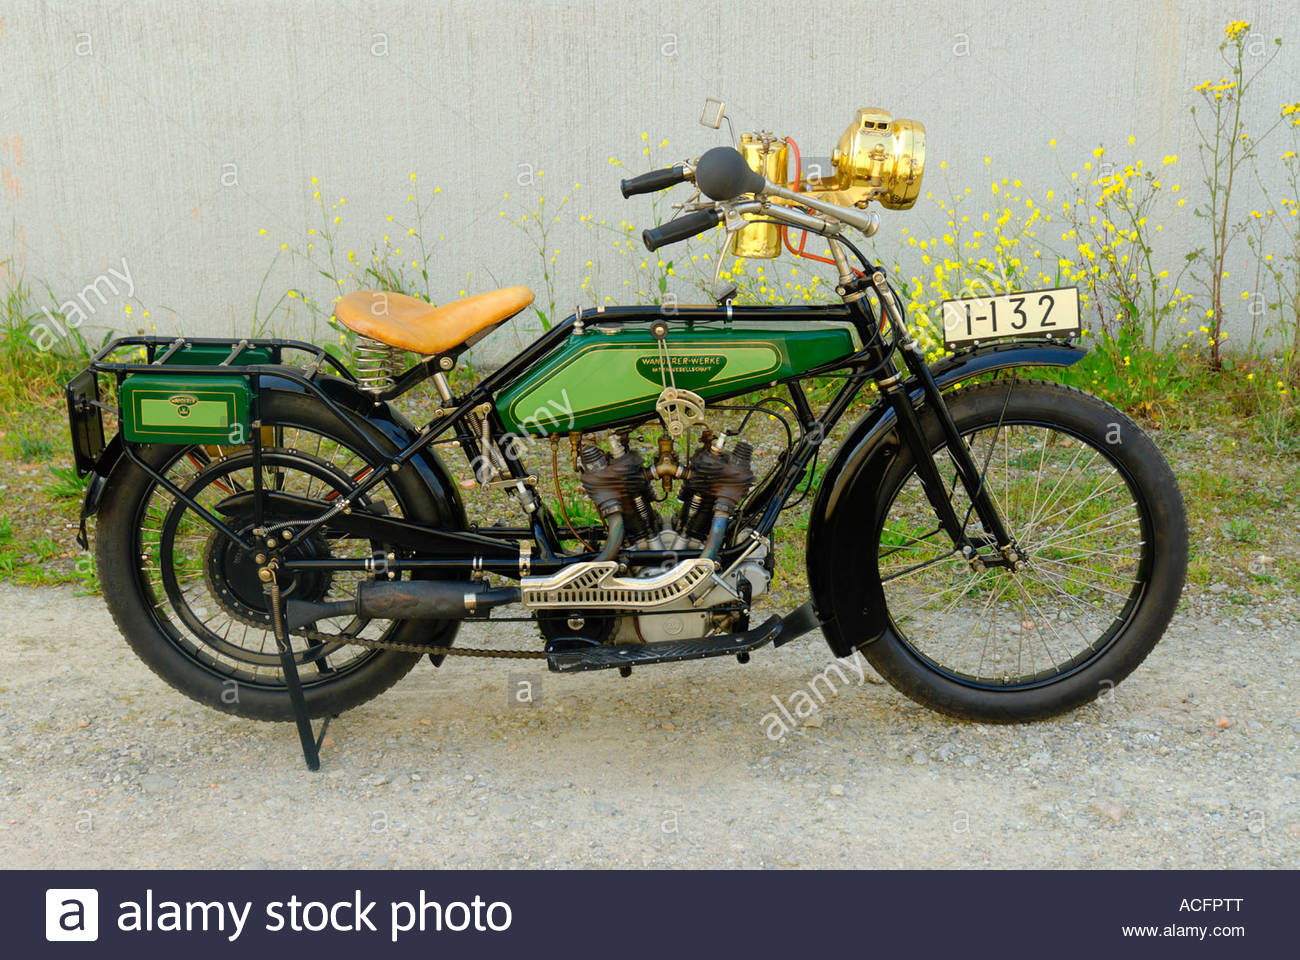 wanderer motorrad oldtimer stockfoto bild 13144391 alamy. Black Bedroom Furniture Sets. Home Design Ideas